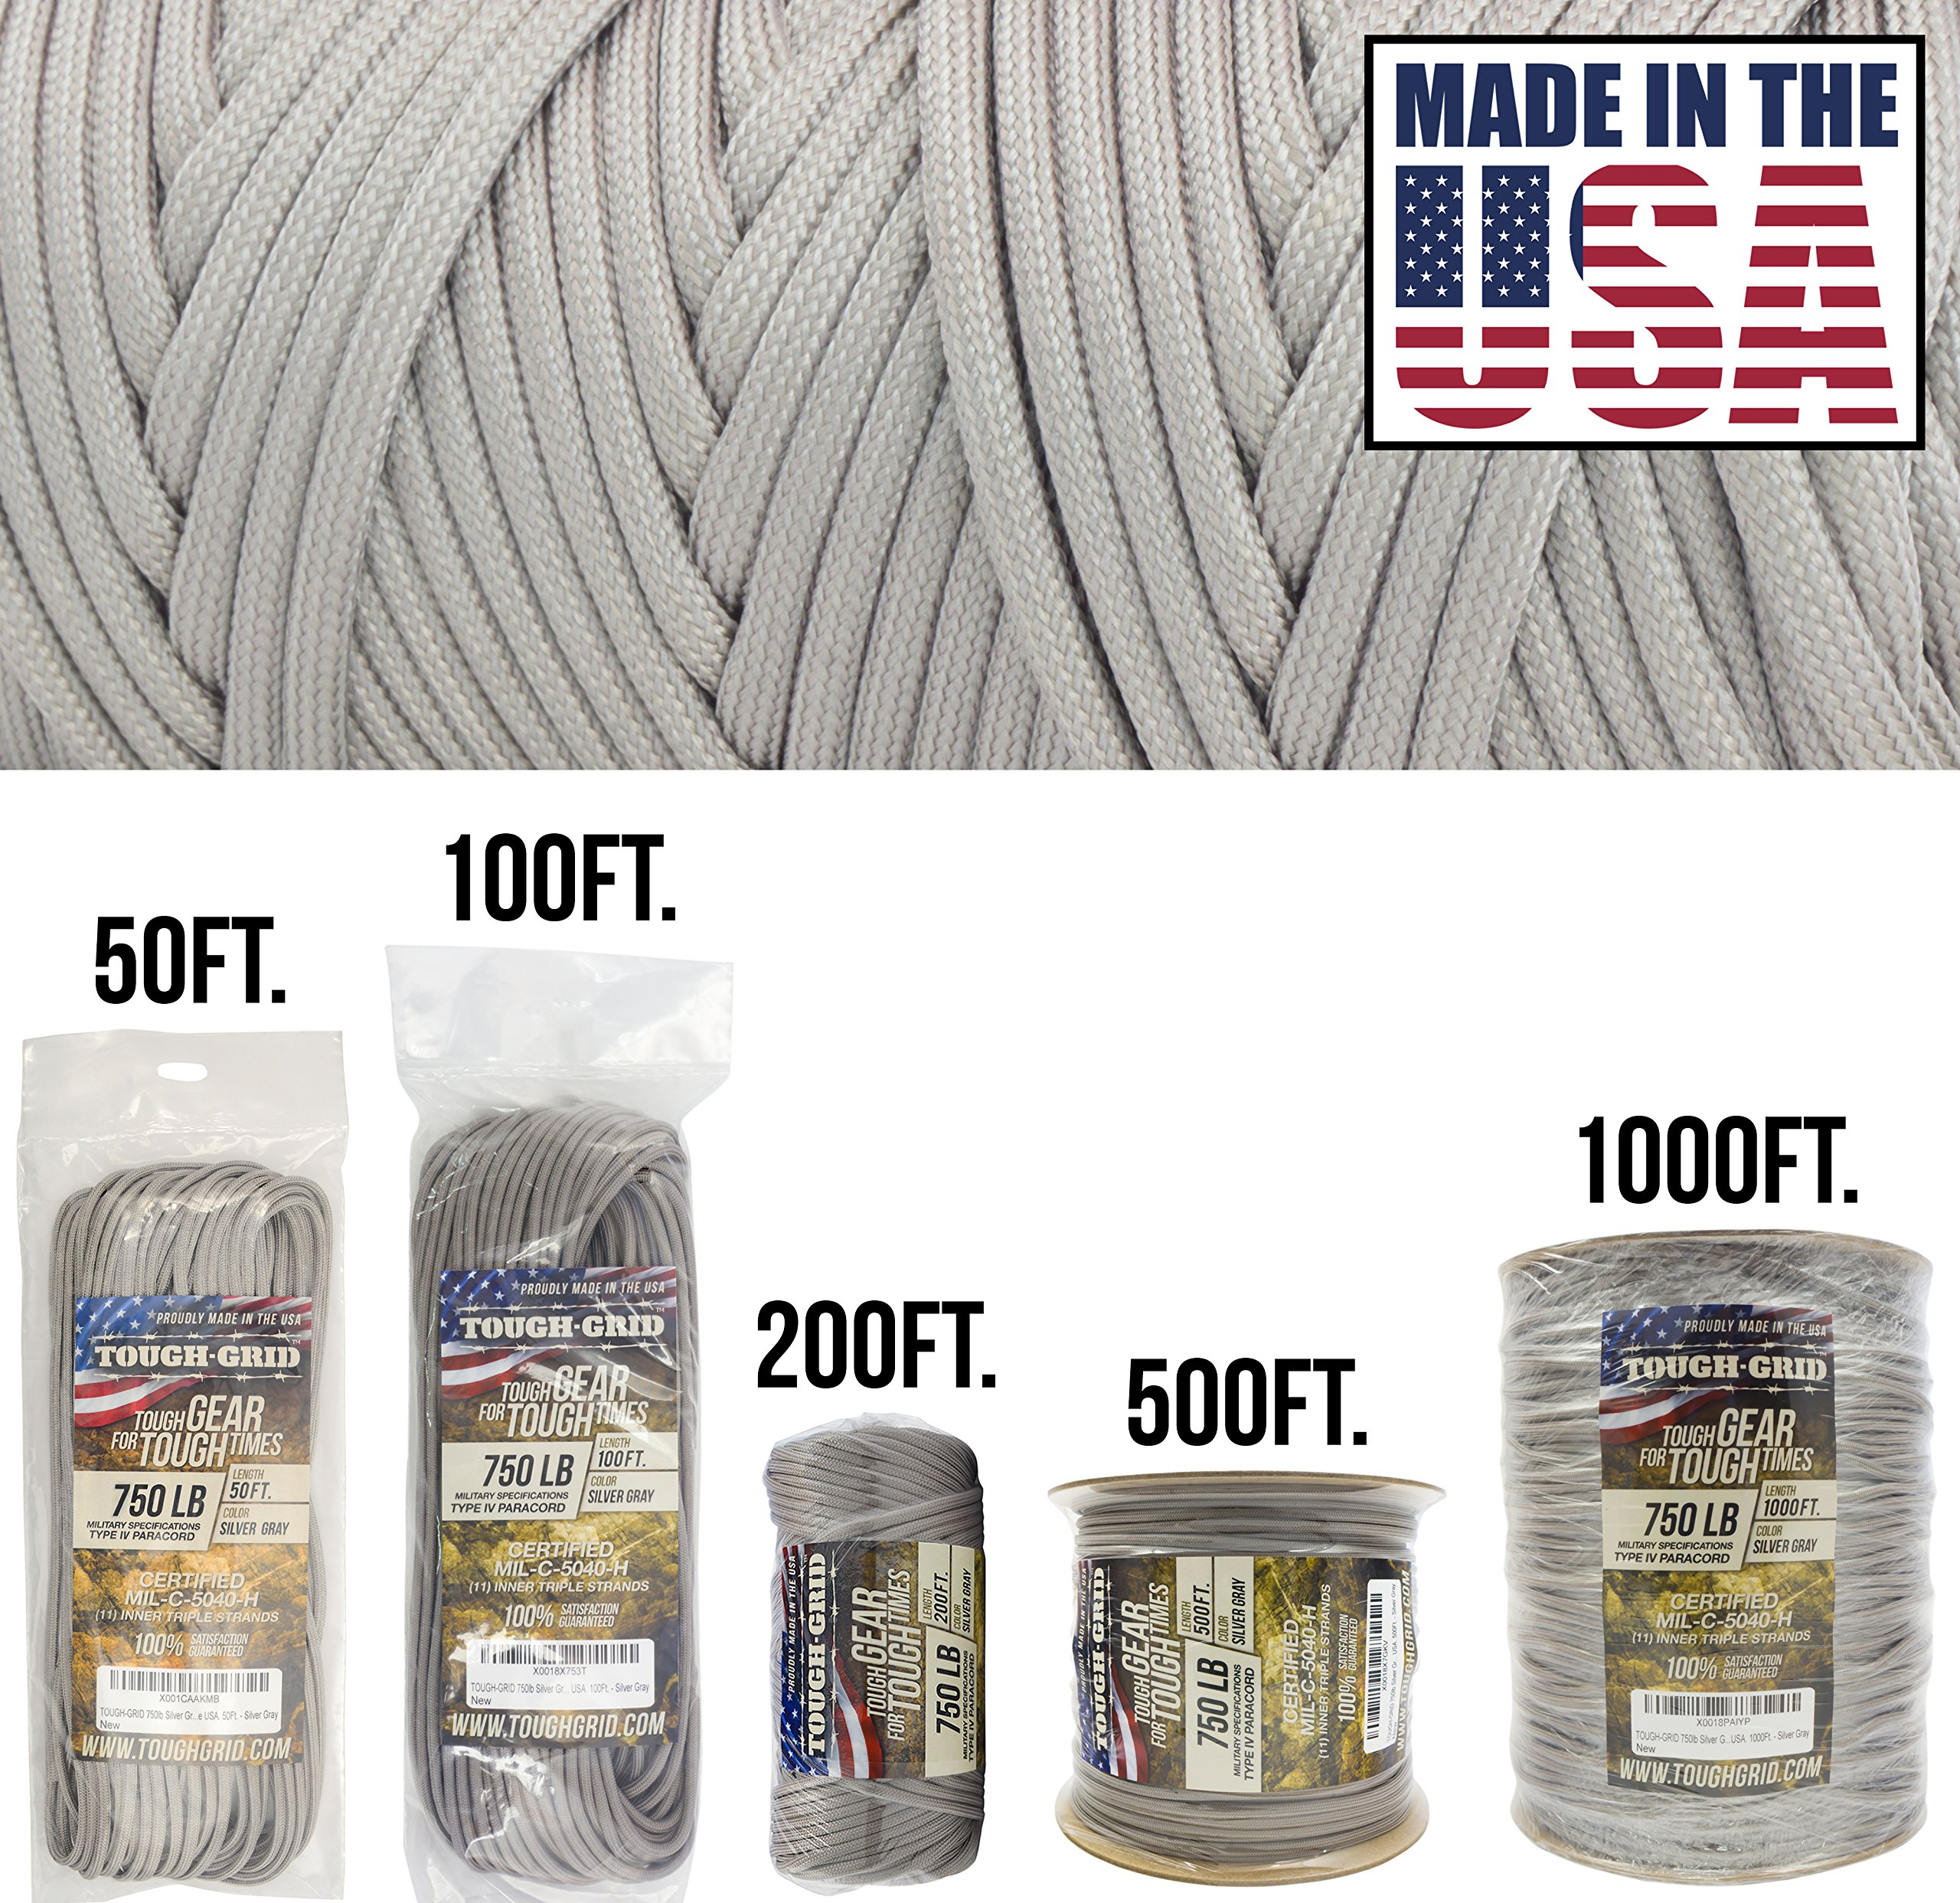 TOUGH-GRID 750lb Silver Gray Paracord/Parachute Cord - Genuine Mil Spec Type IV 750lb Paracord Used by The US Military (MIl-C-5040-H) - 100% Nylon - Made in The USA. 1000Ft. - Silver Gray by TOUGH-GRID